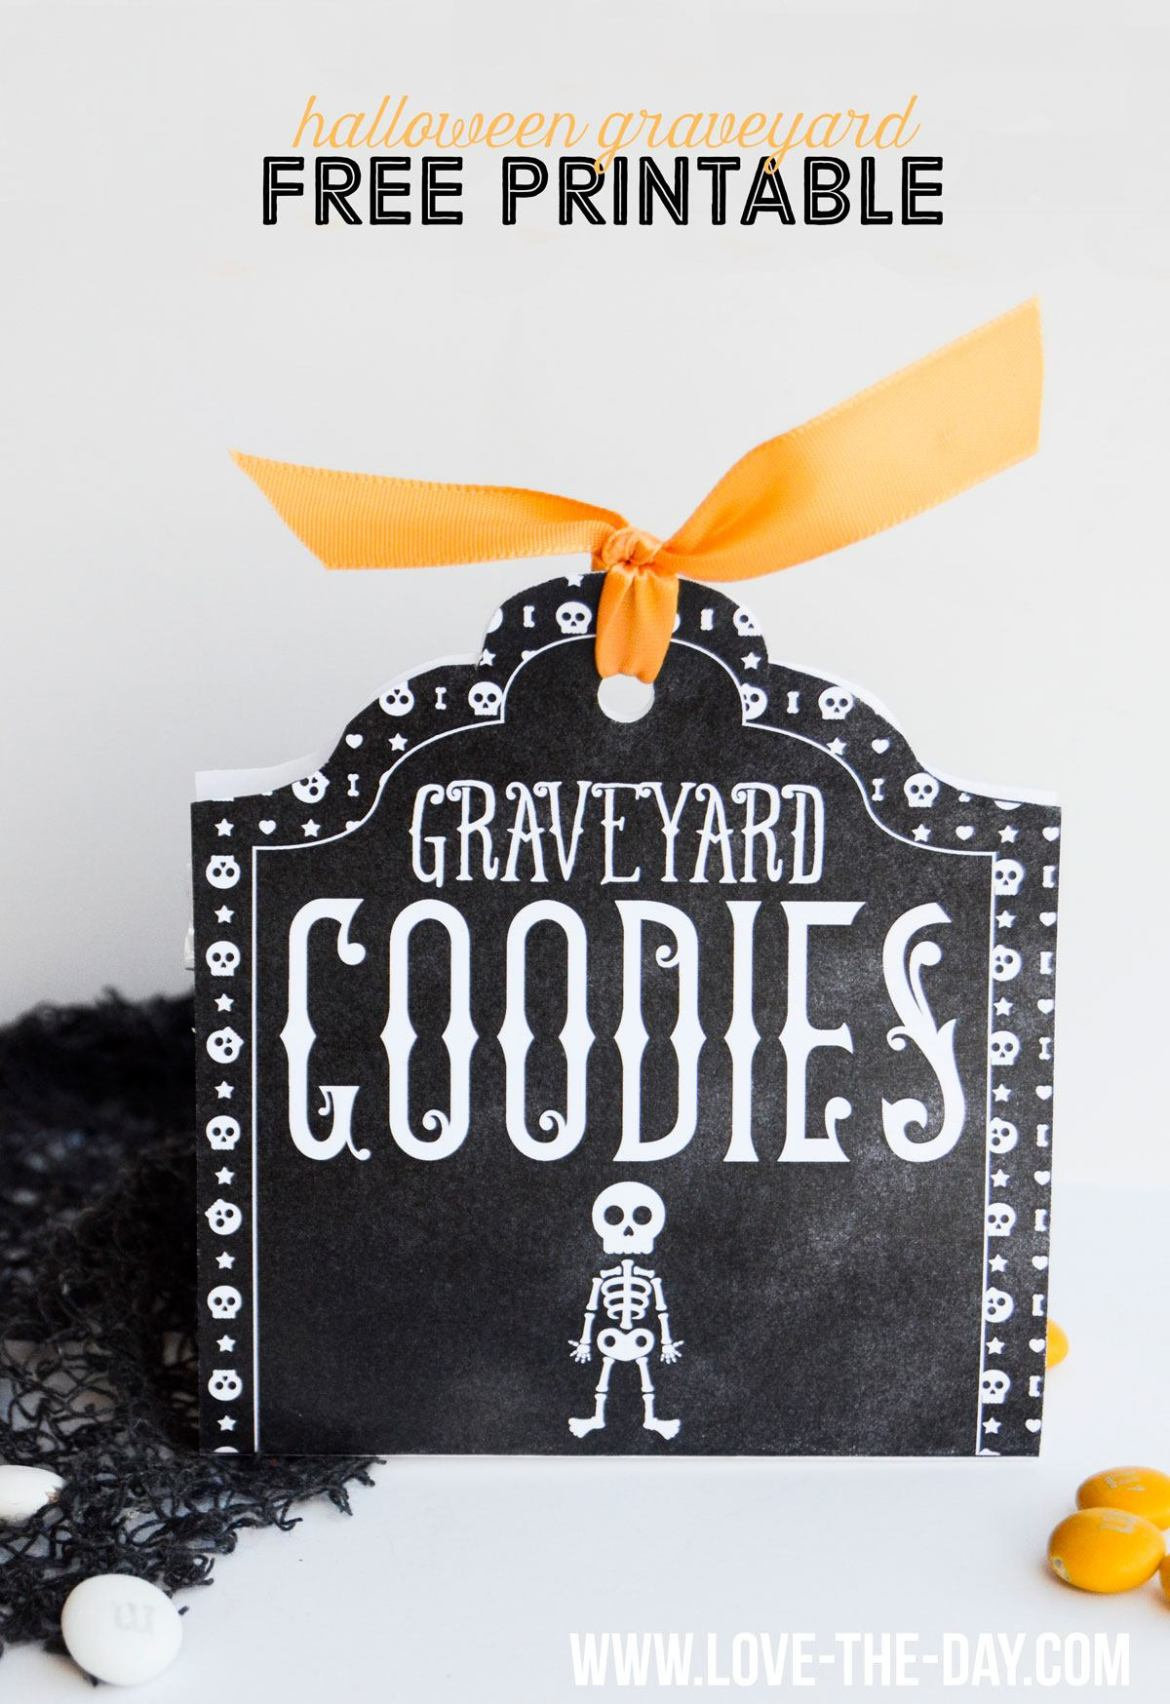 FREE Printable Tags: Graveyard Goodies by Love The Day